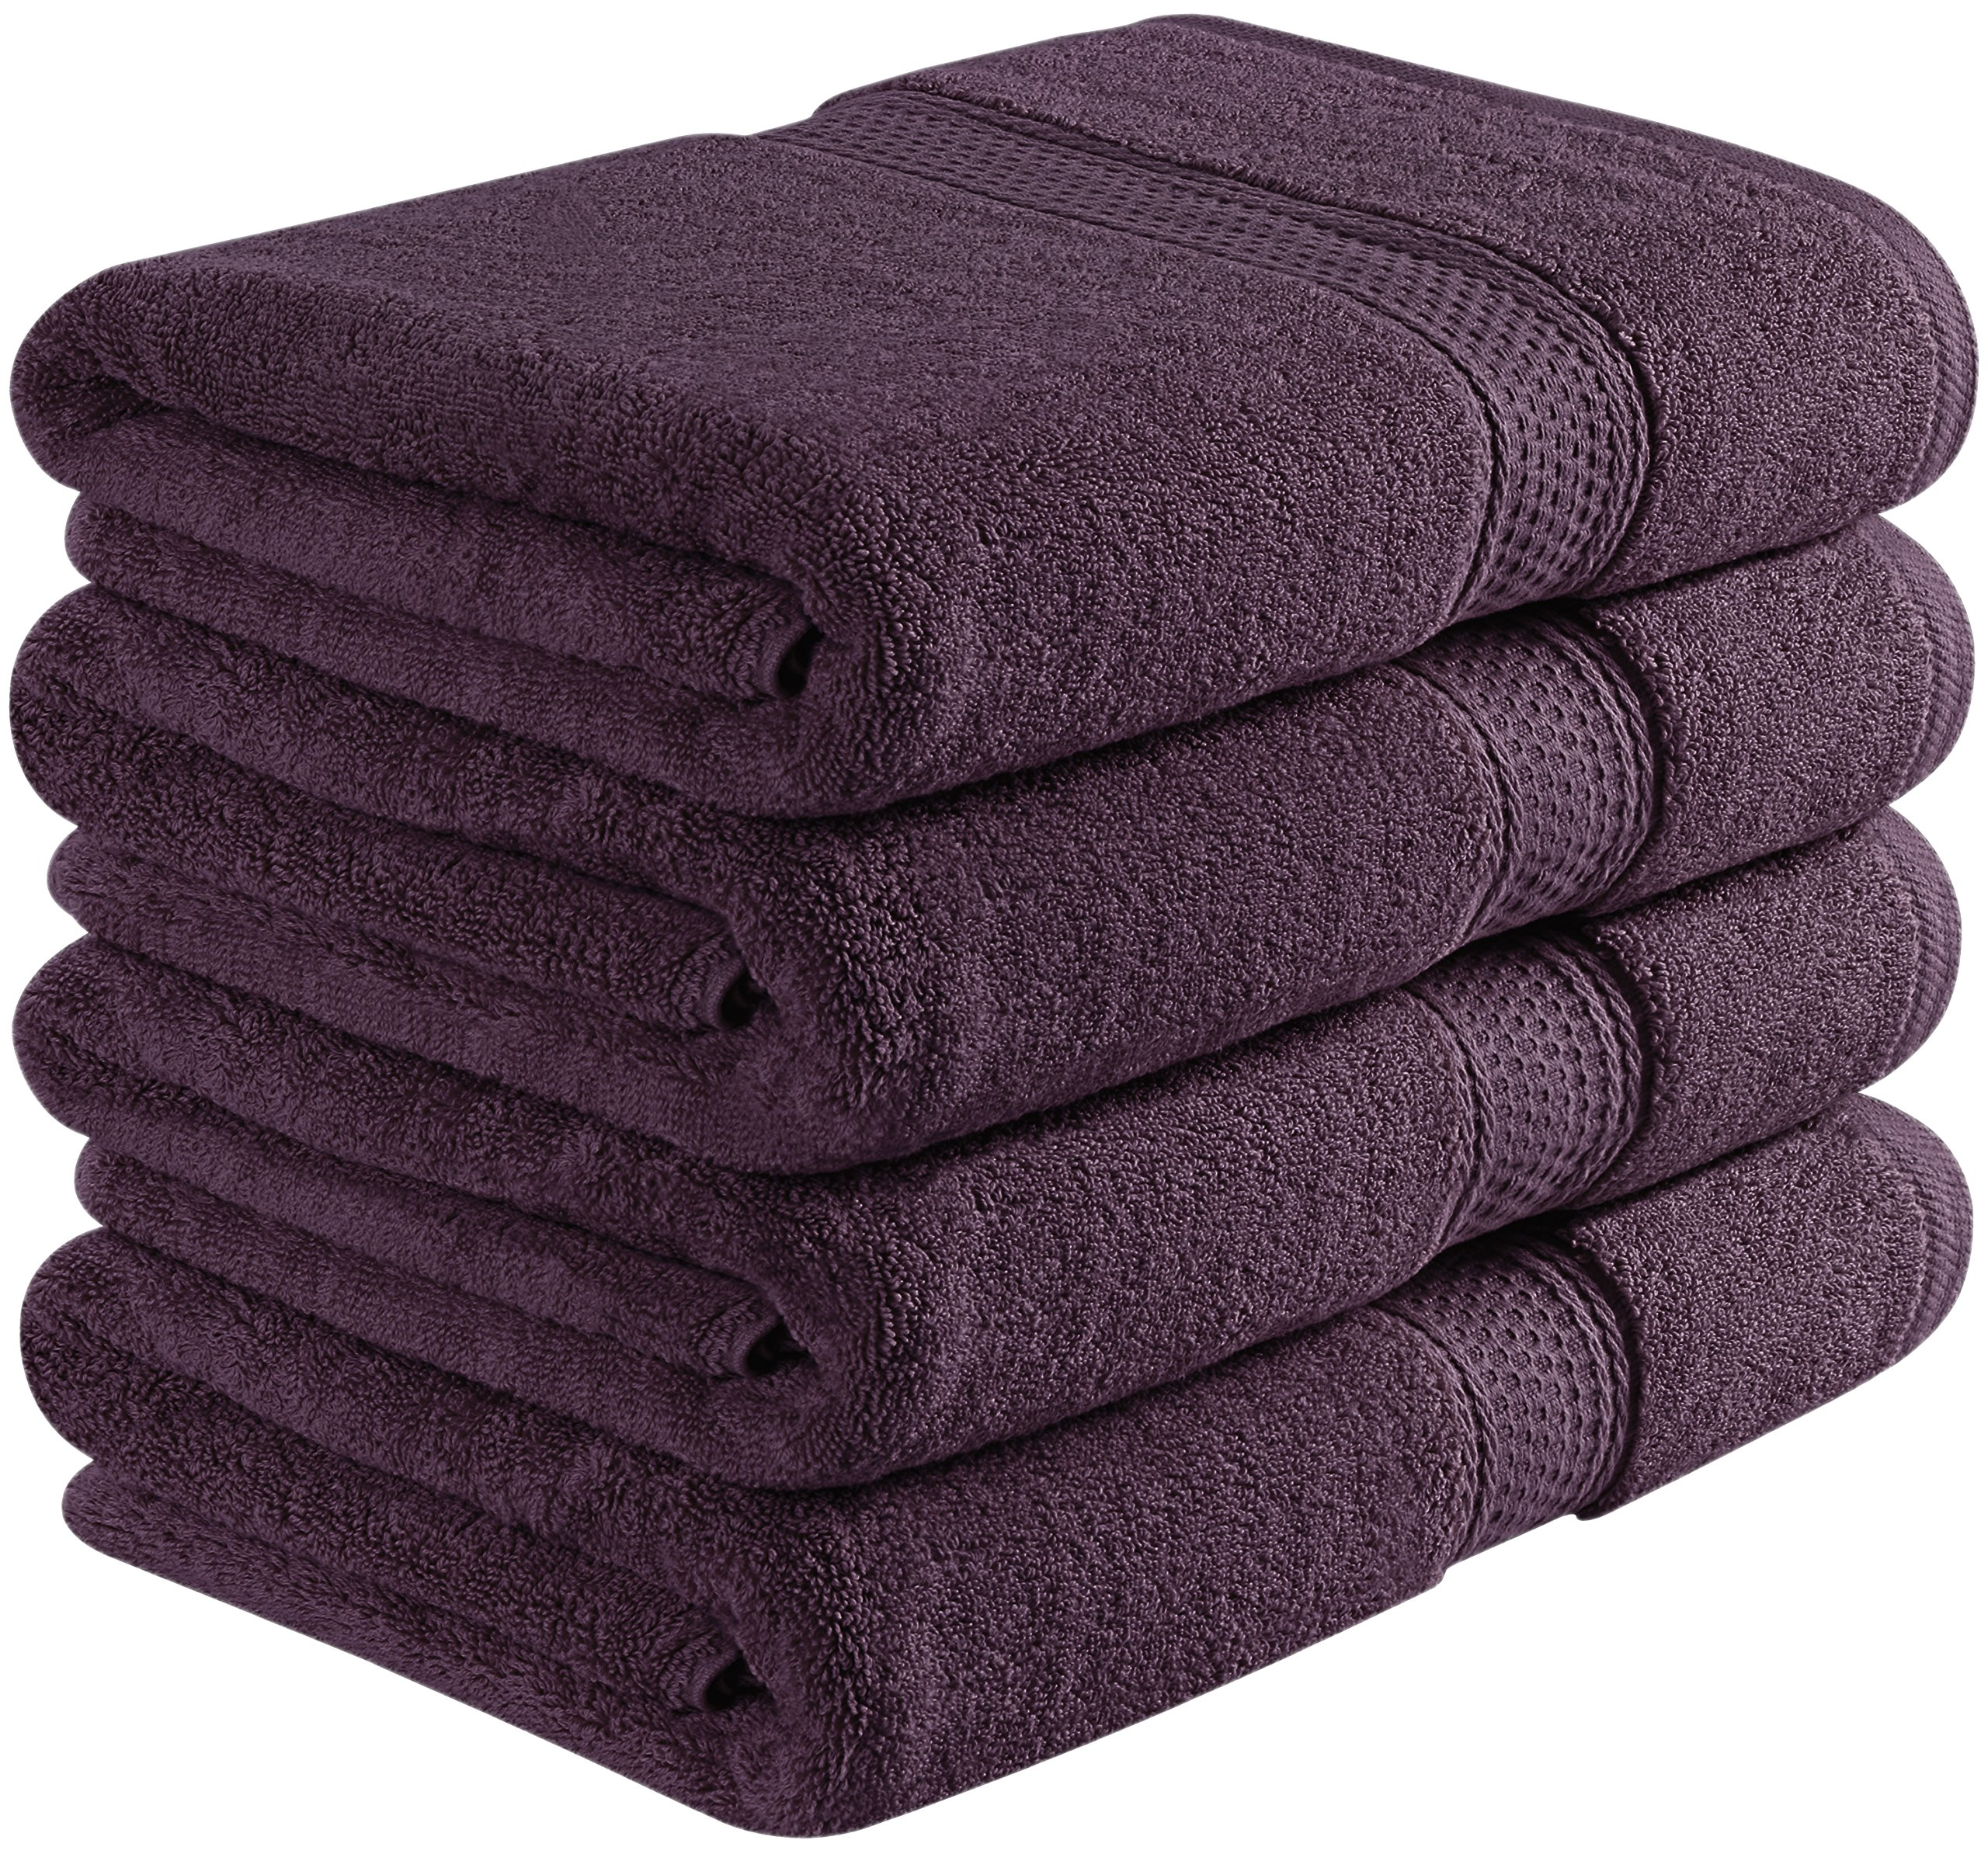 Utopia Towels 700 GSM Premium Plum Bath Towel Set - Pack of 4 - (27 x 54 Inches Each) - 100% Ring-Spun Cotton Towels for Home, Hotel and Spa – Plum Towels Set with Maximum Softness and High Absorbency by Utopia Towels